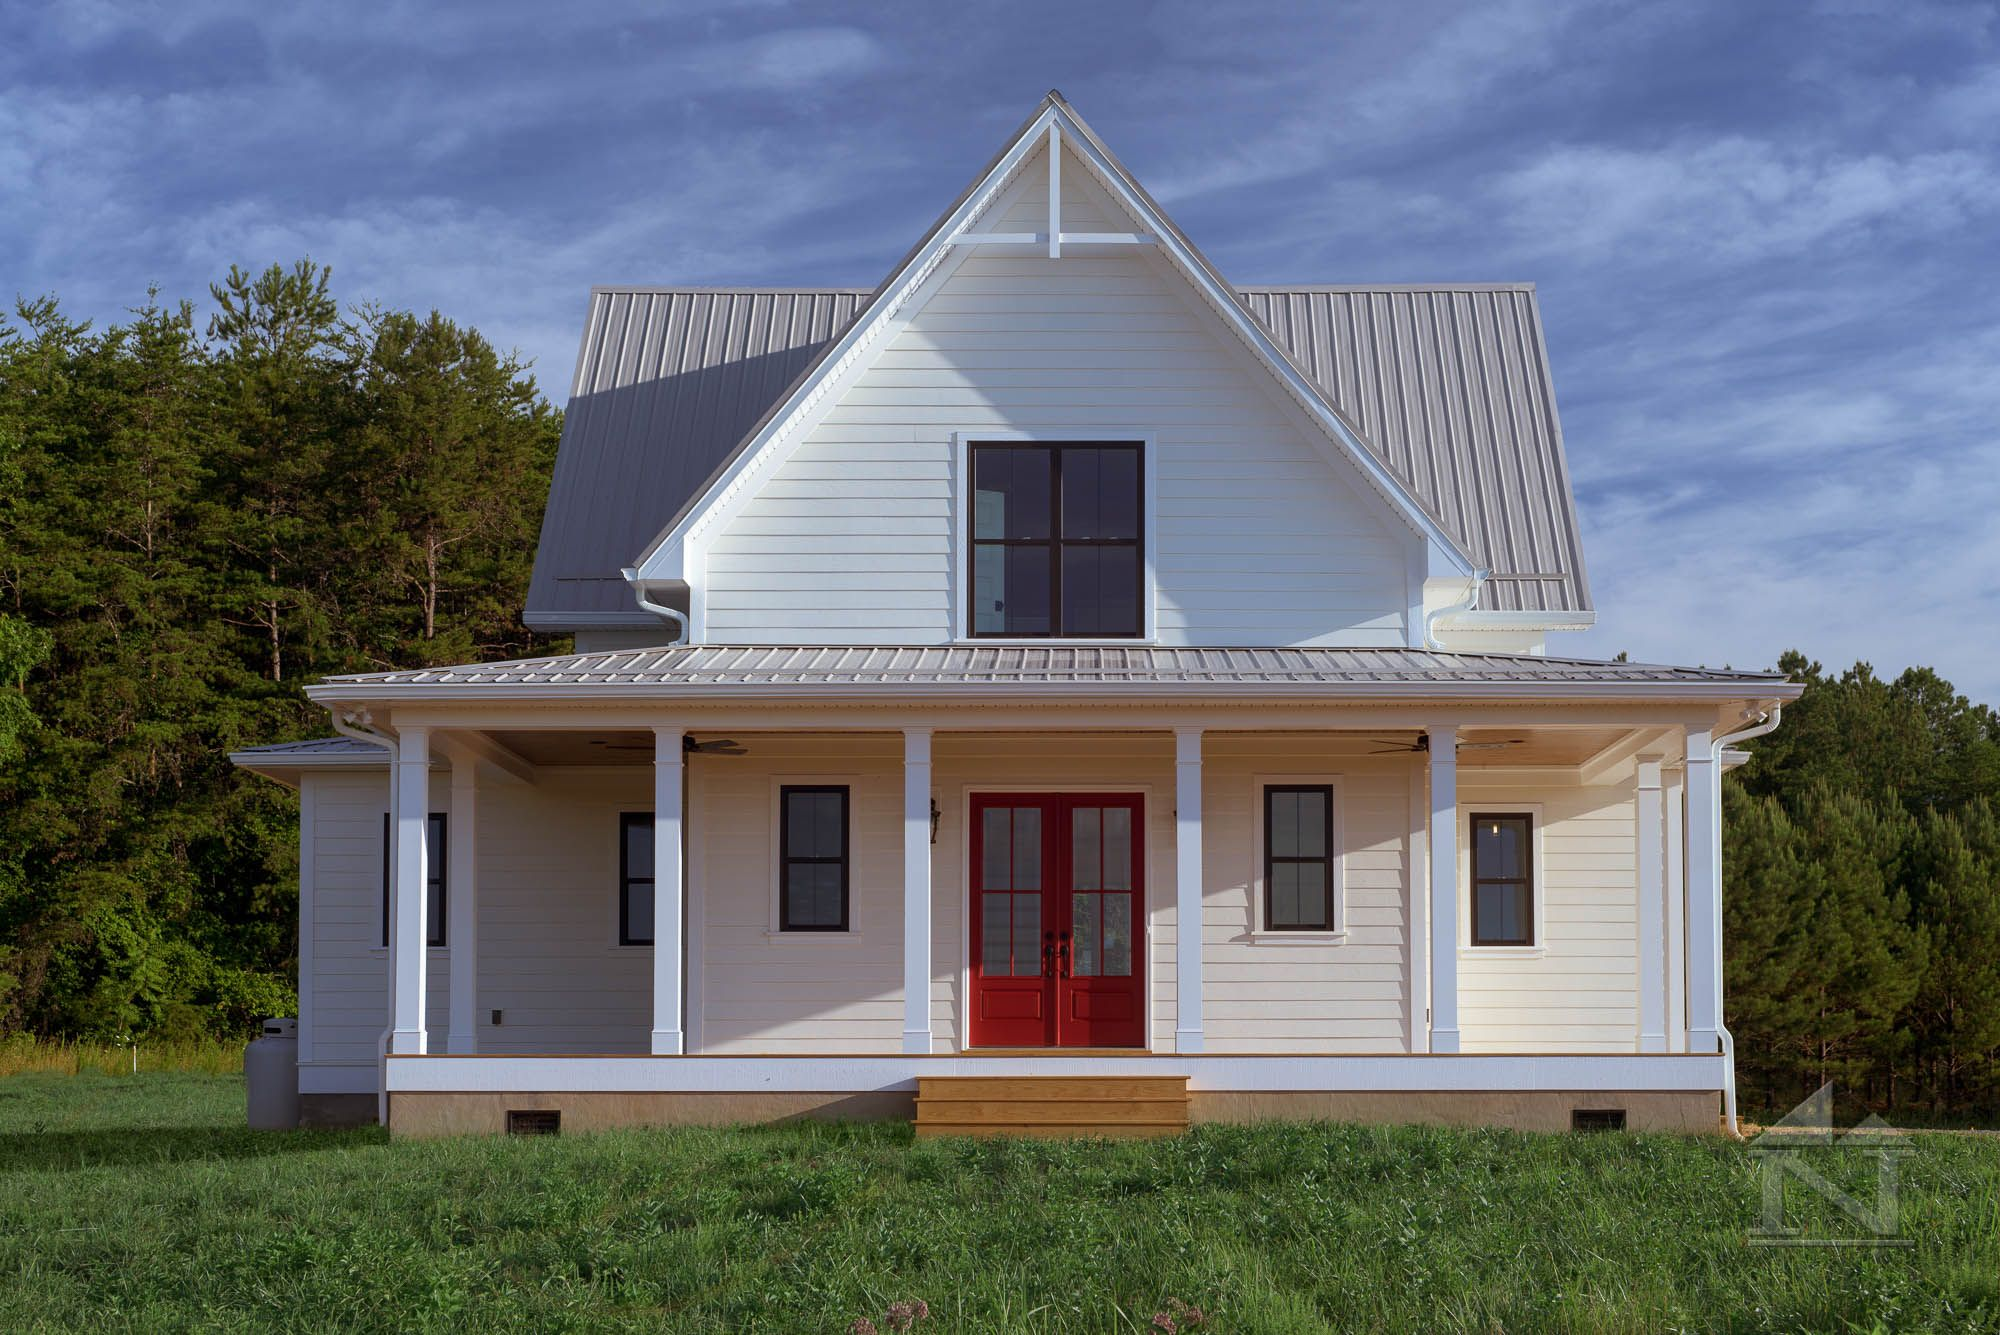 Farmhouse with metal roof. Custom home built by North